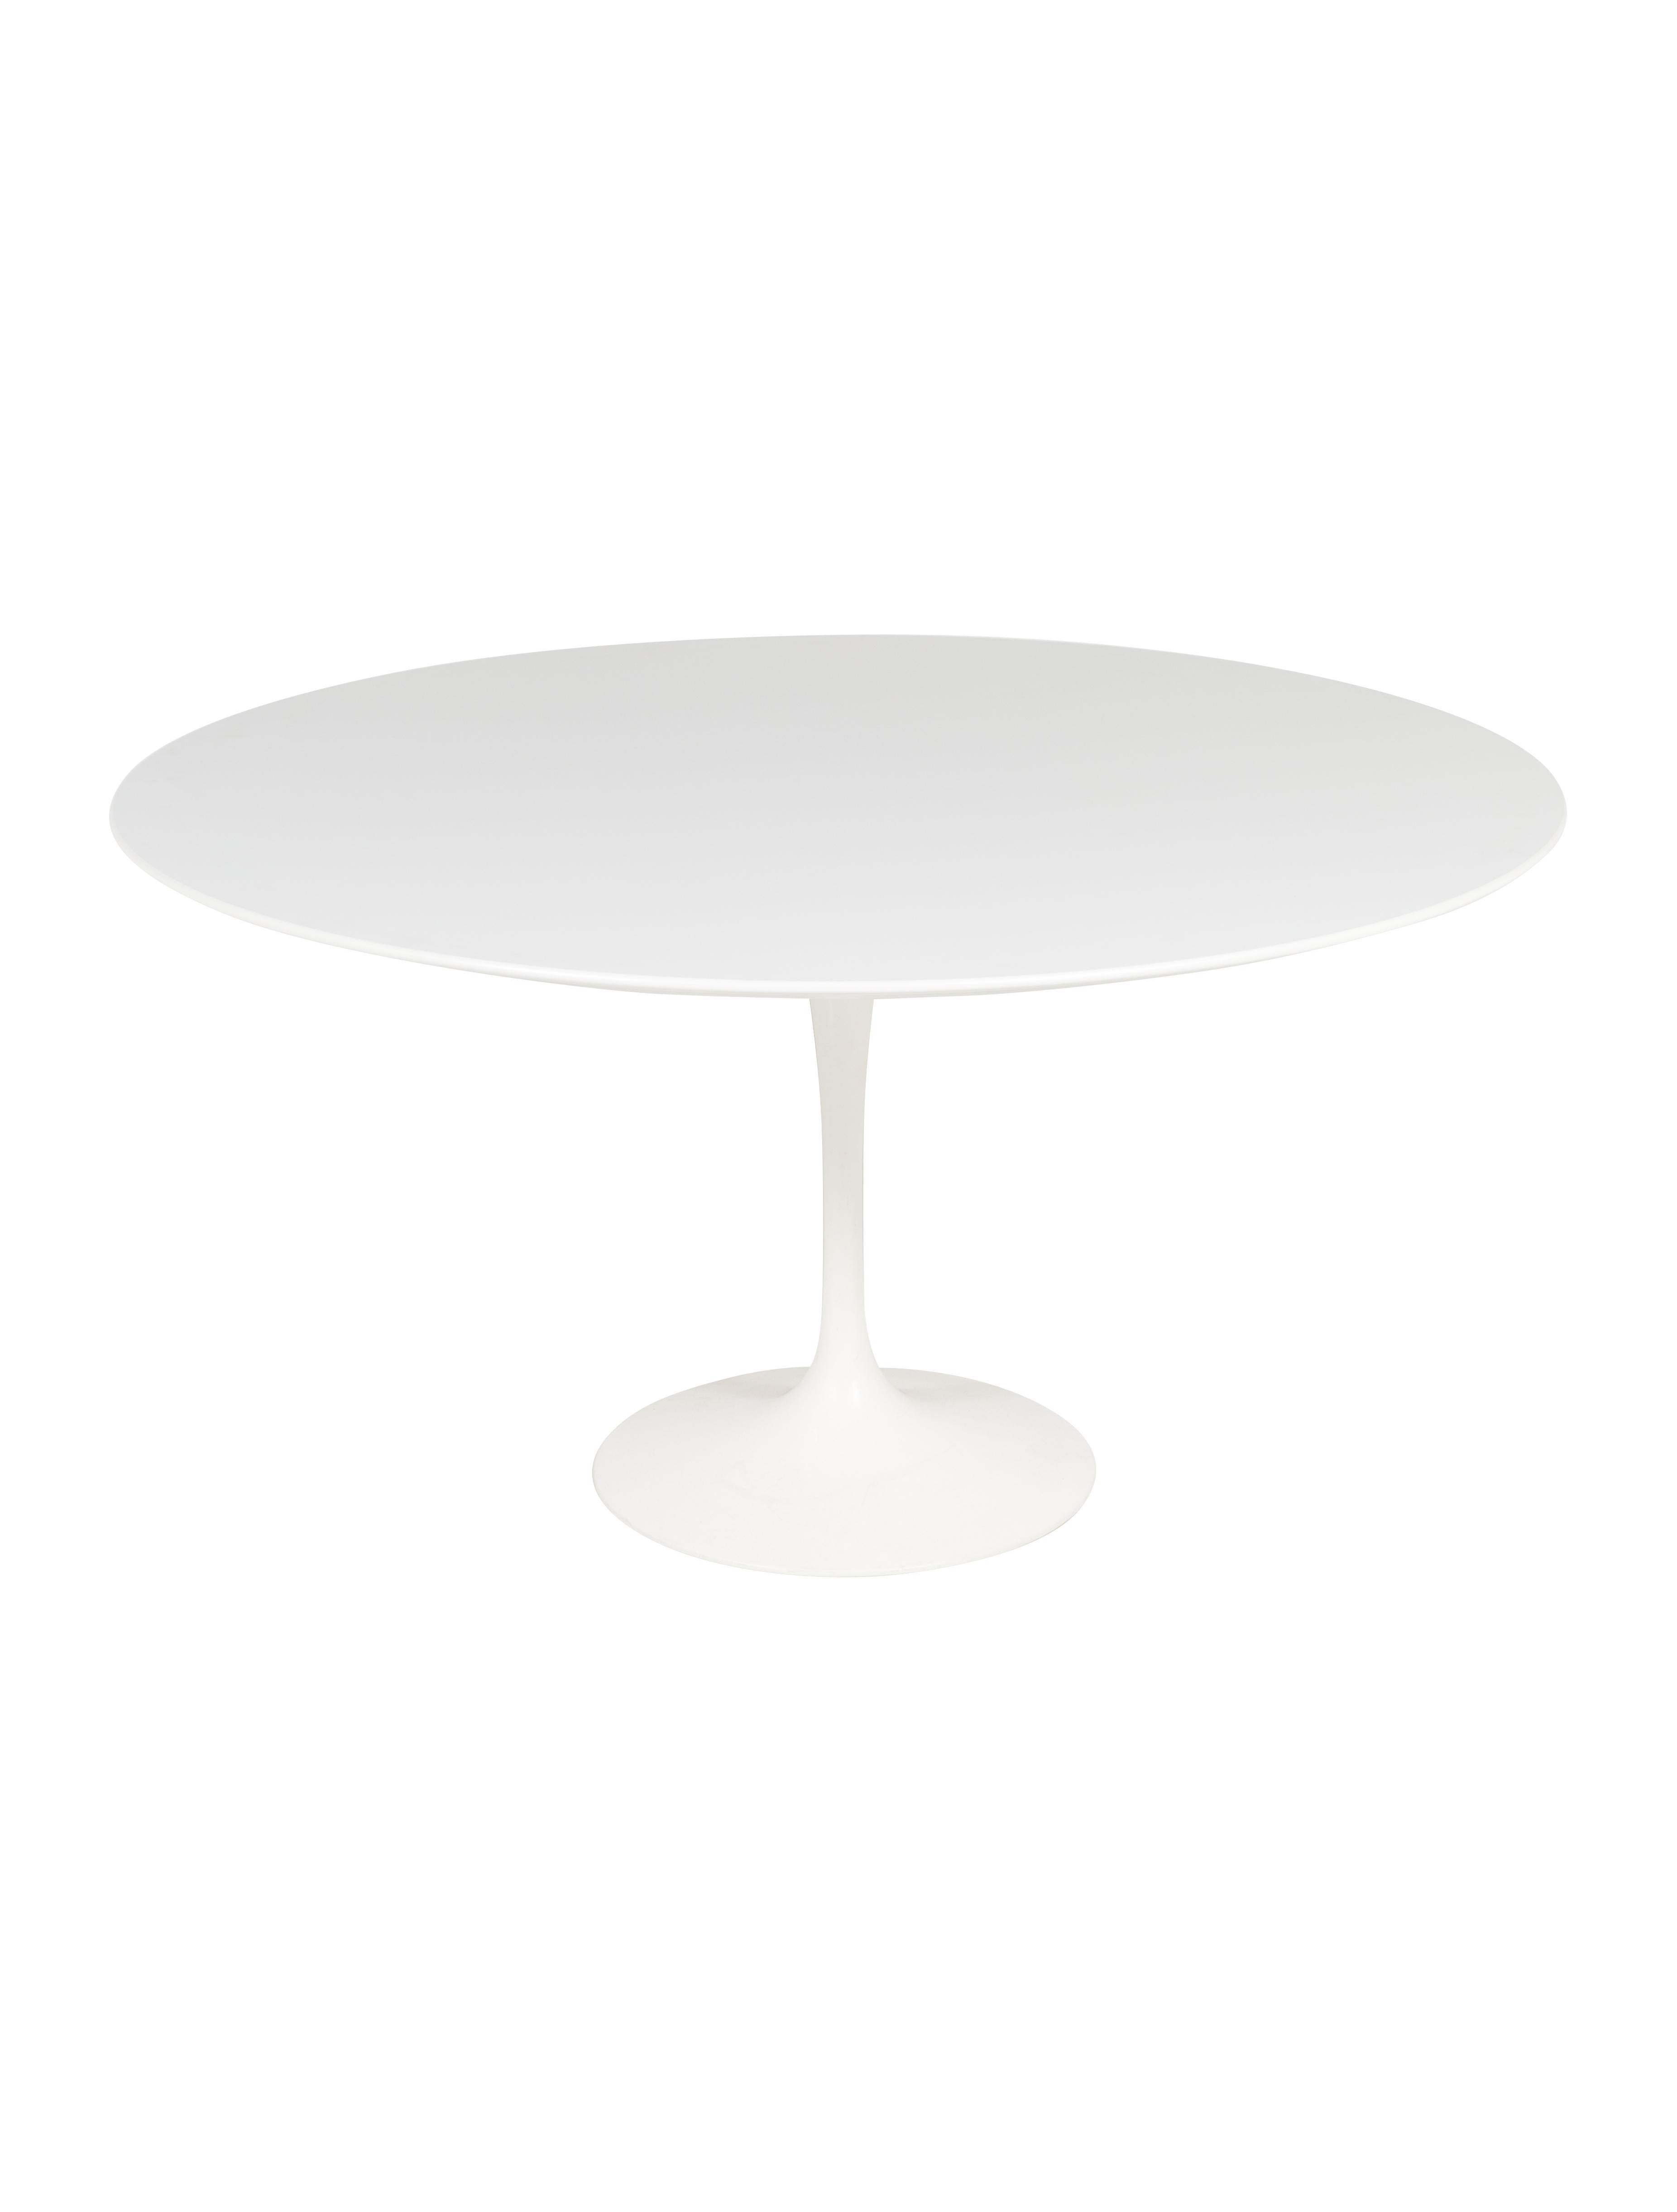 knoll saarinen round dining table furniture knl20111 the realreal. Black Bedroom Furniture Sets. Home Design Ideas